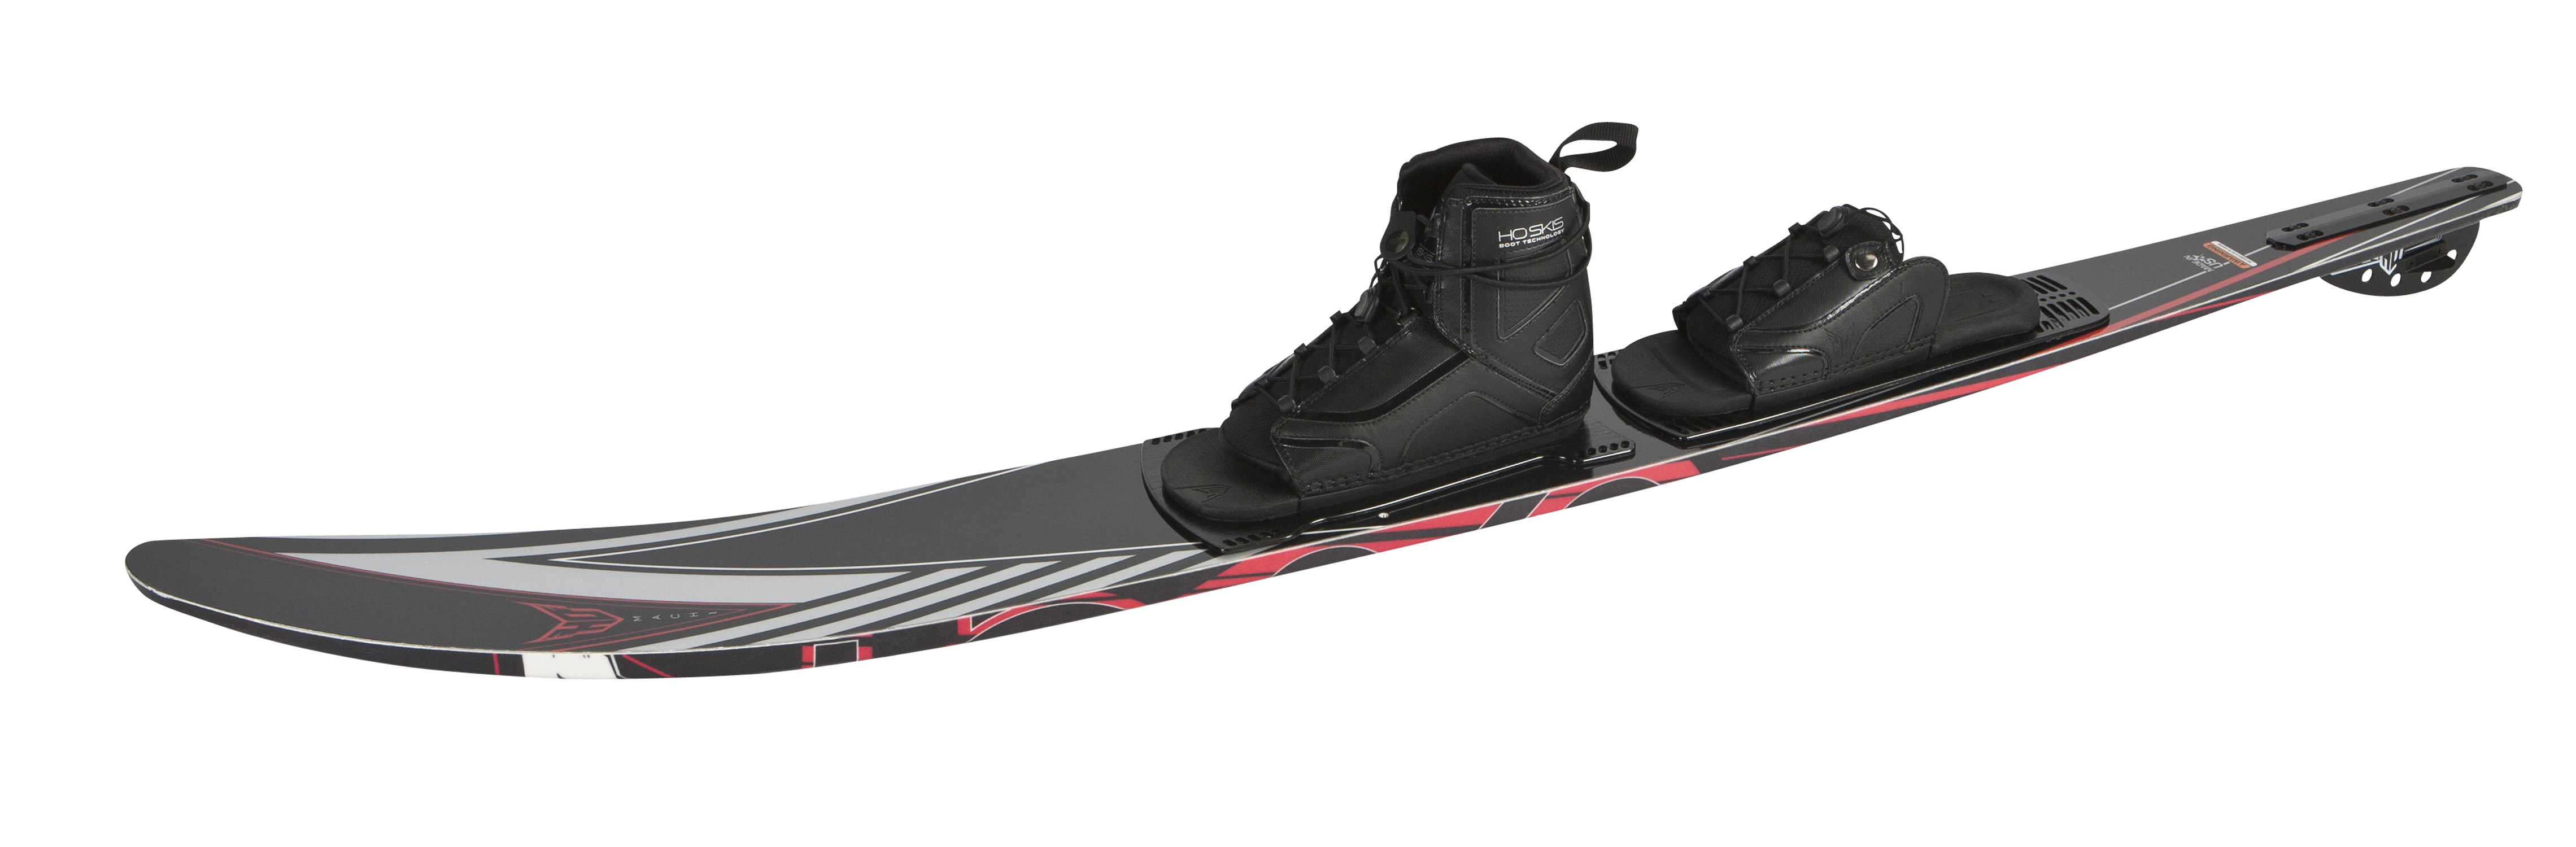 Ski Some things get better with ageKey Features of the HO Mach 1 Slalom Waterski 68 w/ Basis & Artp Boots: Tunnel Concave Design for Deep and Stable Ride 3-Stage Rocker for Balance and Speed Pin Tail Geometry for Turns Off the Tail Polyurethane Foam Core for Traditional Ski Feel T-Extrusion Fin Block Handmade in the USA - $399.99